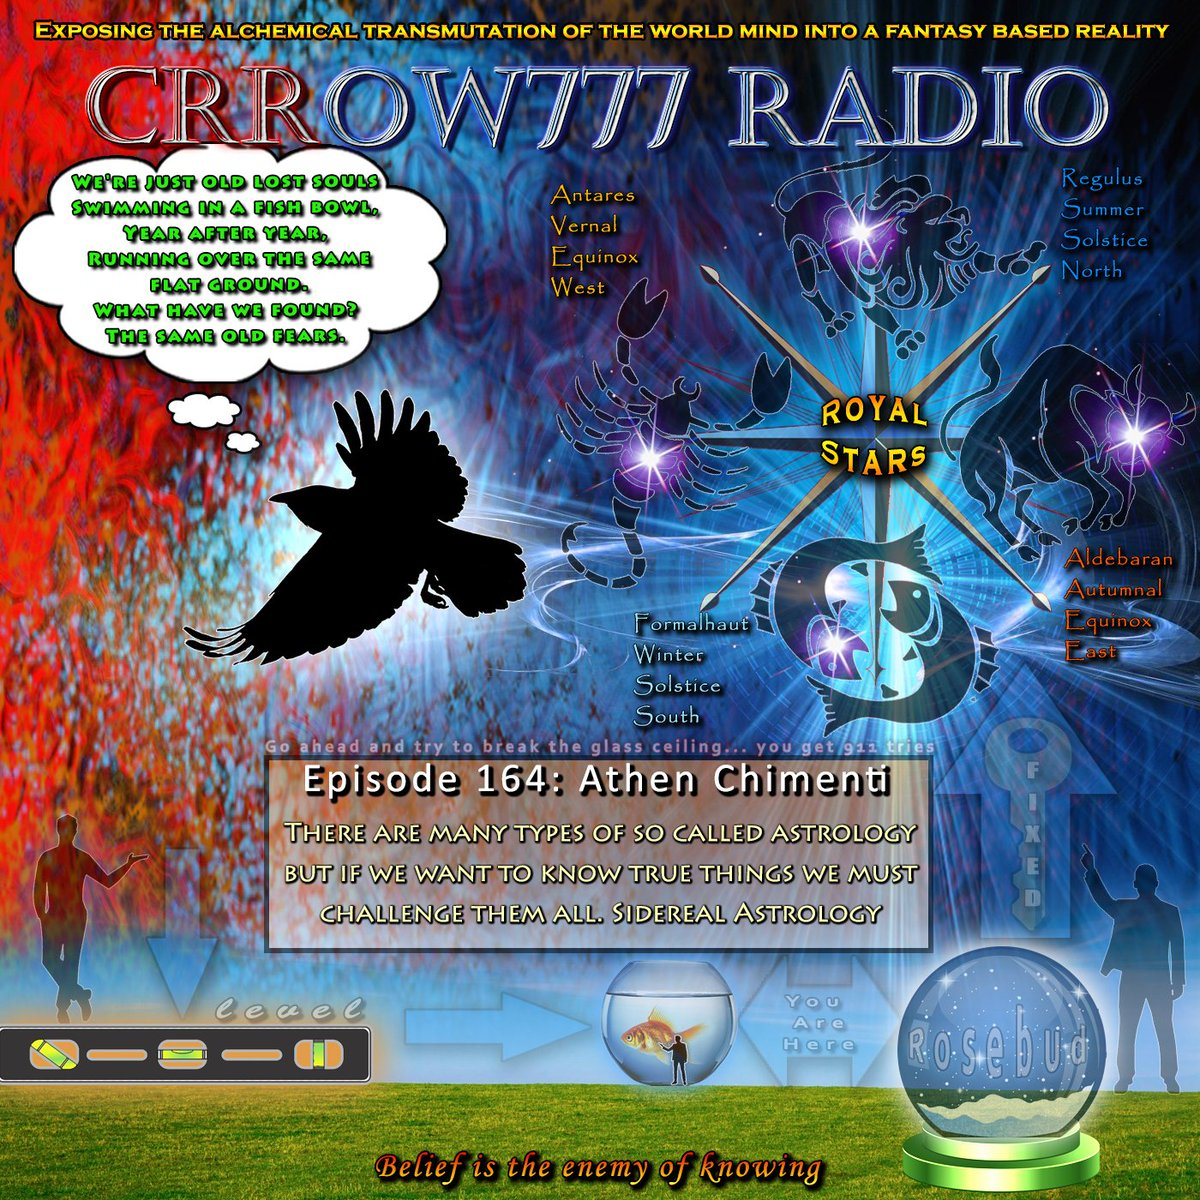 Episode 164 this Thursday at http://Crrow777Radio.com. Challenging all astrology to understand the Skyclock.